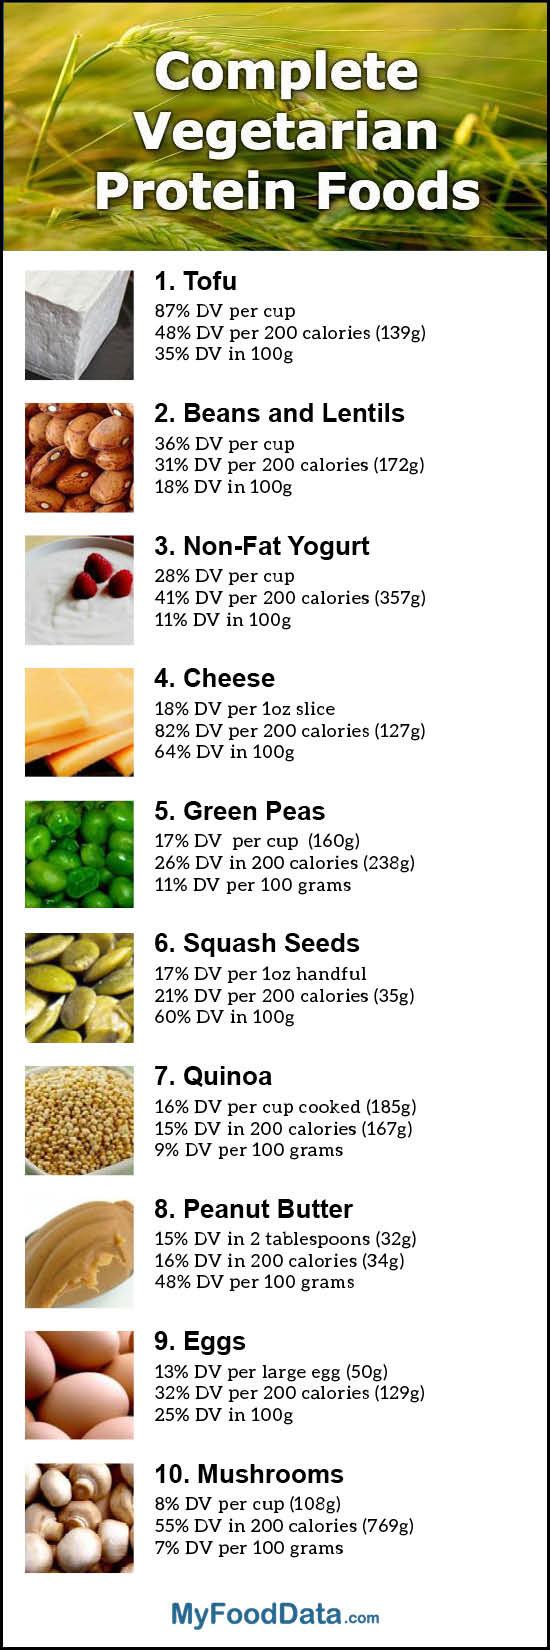 Protein Food For Vegetarian  Top 10 plete Ve arian Protein Foods with All the